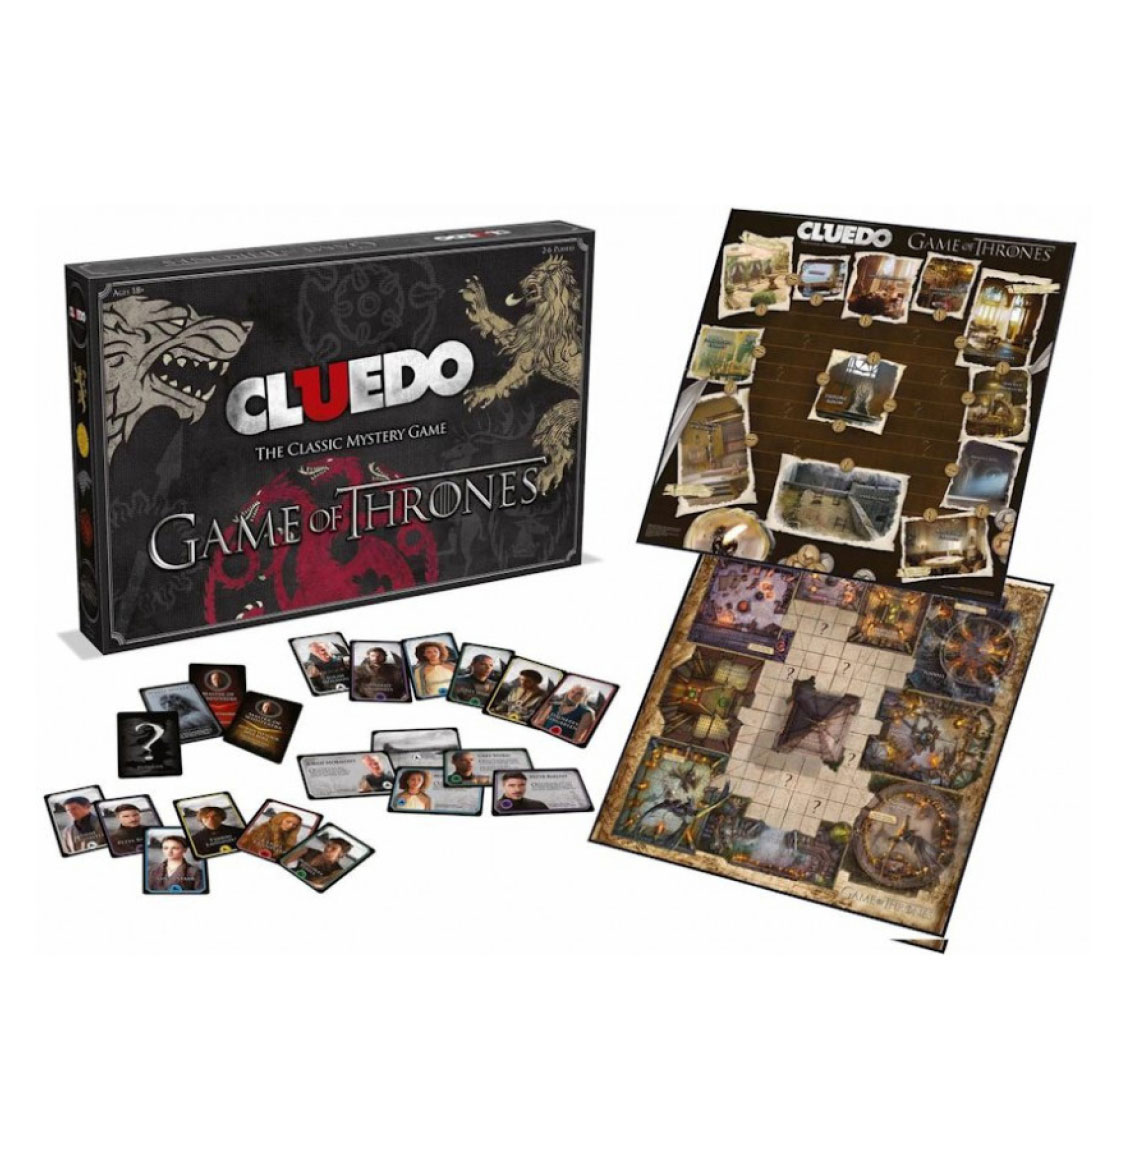 Cluedo Game Of Thrones Edition